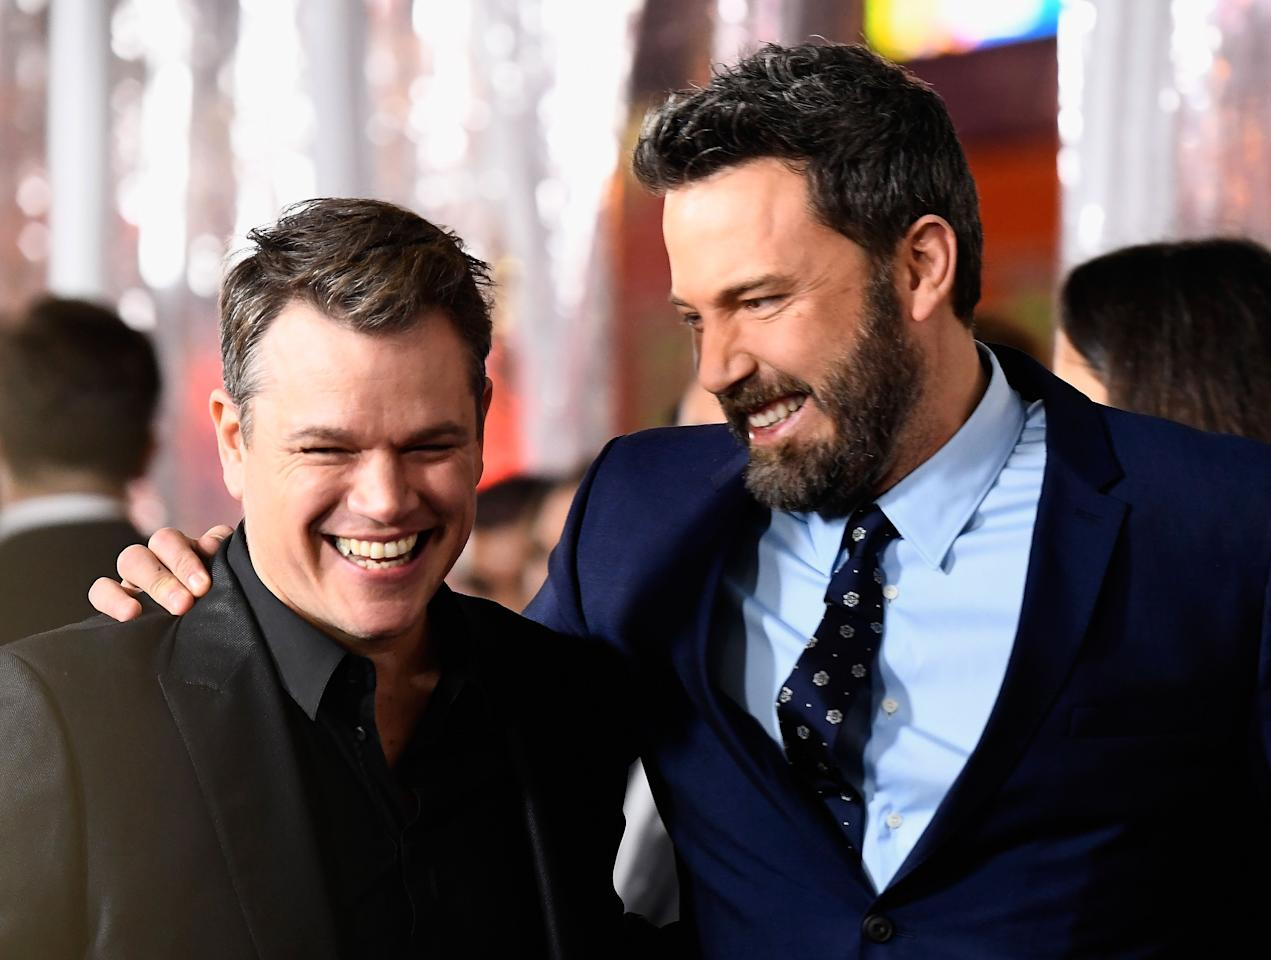 <p>Living under the same roof, ignoring the dishes left in the sink, using up all of the hot water while showering in the shared bathroom. Celebrity roomies, they're just like us! Well, they were, before they hit it big.</p>